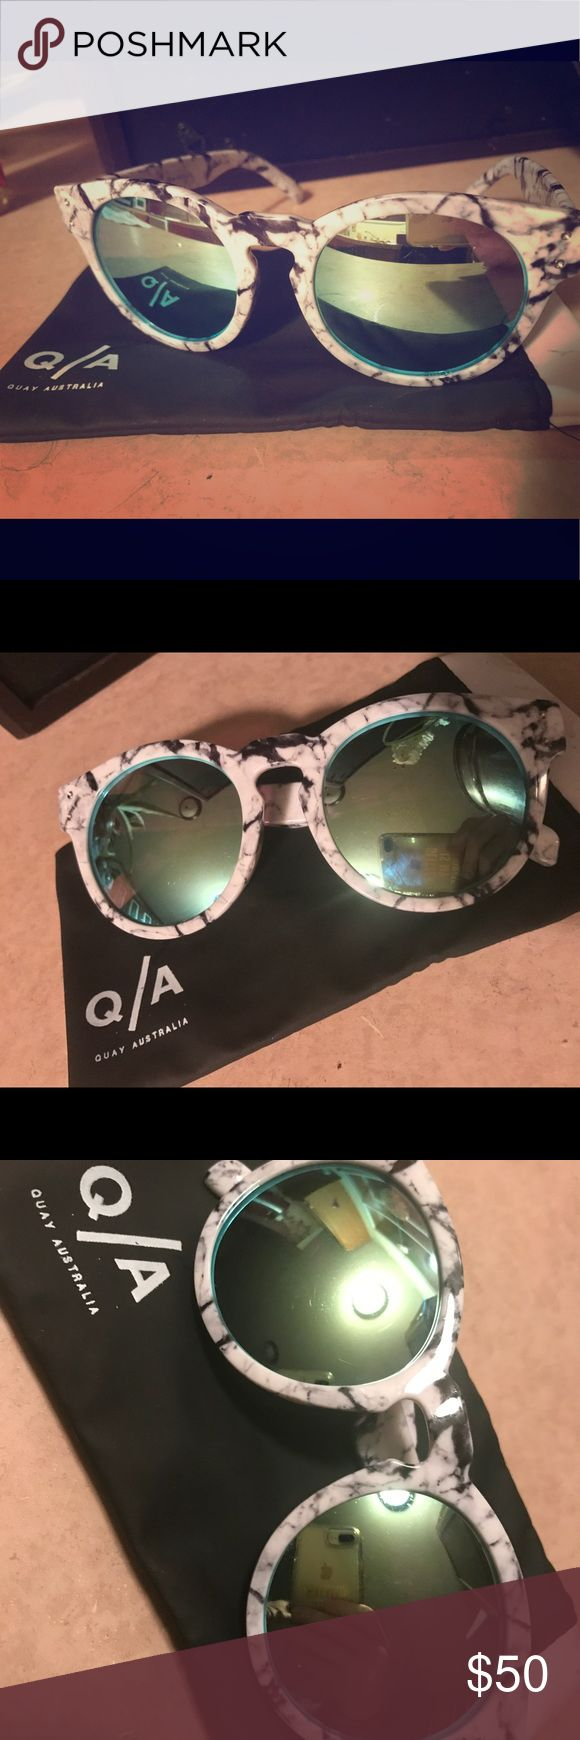 "Authentic Quay Australia Sunglasses ✨Re-Poshing this SUPER cute pair of Authentic Quay Australia Sunnies😎Funny! I bought these Sunnies off Poshmark an wound up ""loosing them"" in a purse👜 I put up into my closet👗👠👛👓I looked👀EVERYWHERE for them, just gave up after getting inpatient for someone to list the exact pair👓again on Posh, and purchased them off the Quay Australia website. I later found the original pair, and now I have two of the same so I'm selling one!🤳🏼💅🏼💋💁🏼✨🚫No low…"